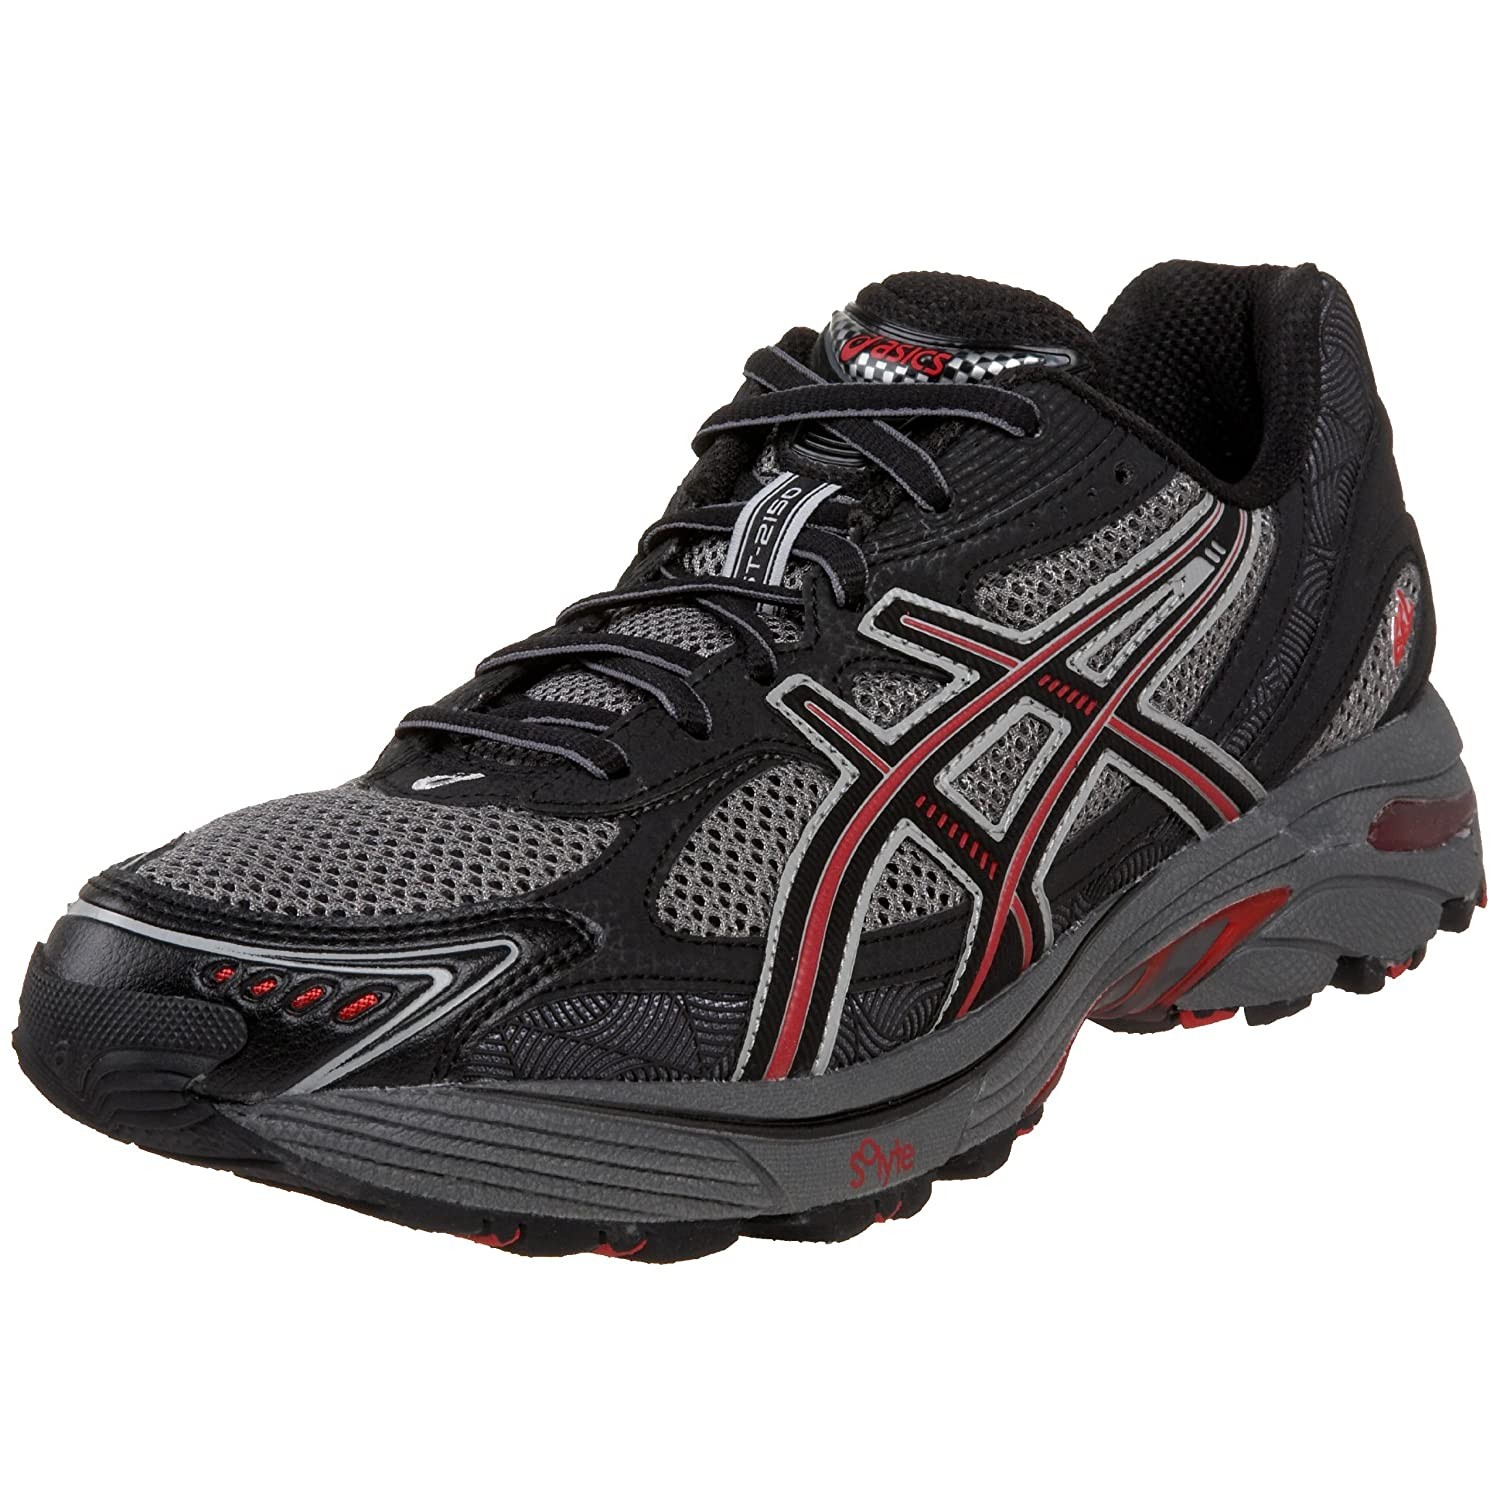 a5d4cae9a8 Amazon.com | ASICS Men's GT-2150 Trail Running Shoe, Black/Onyx/Red, 7 M |  Trail Running